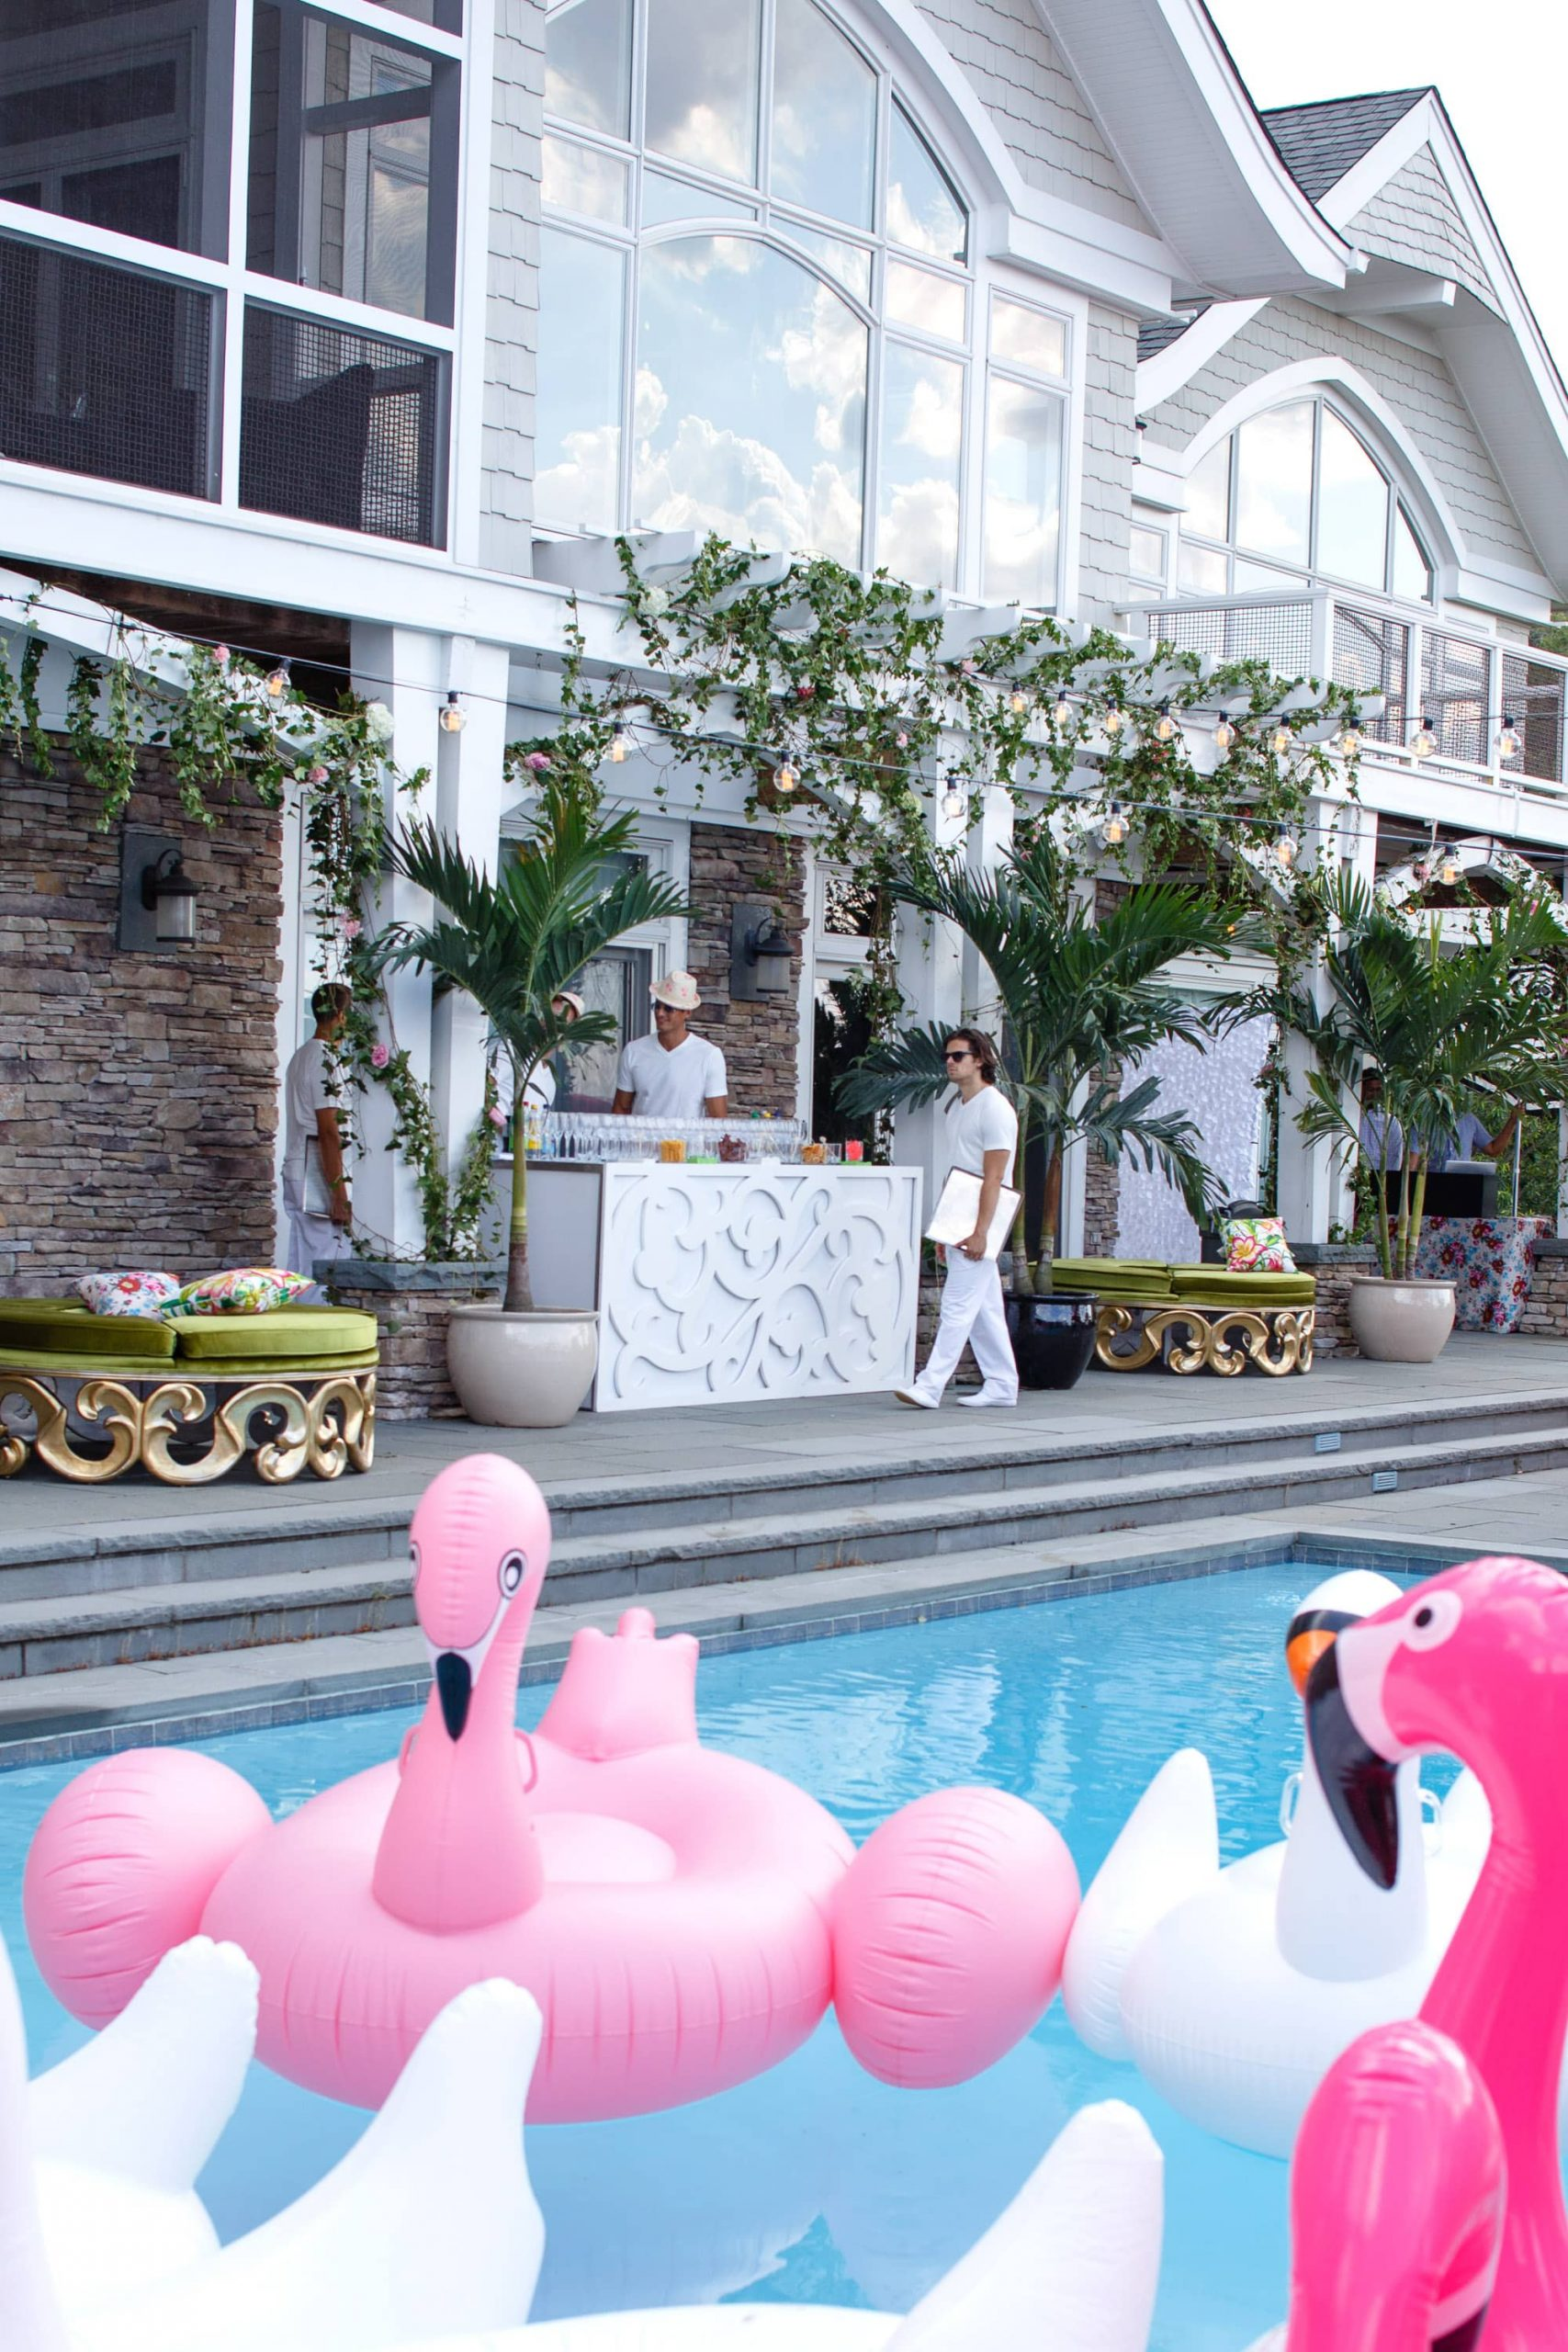 Drink bar and pool with pink flamingo and white swan floats at this South Beach-inspired first birthday pool party in the Hamptons | Photo by Cava Photo